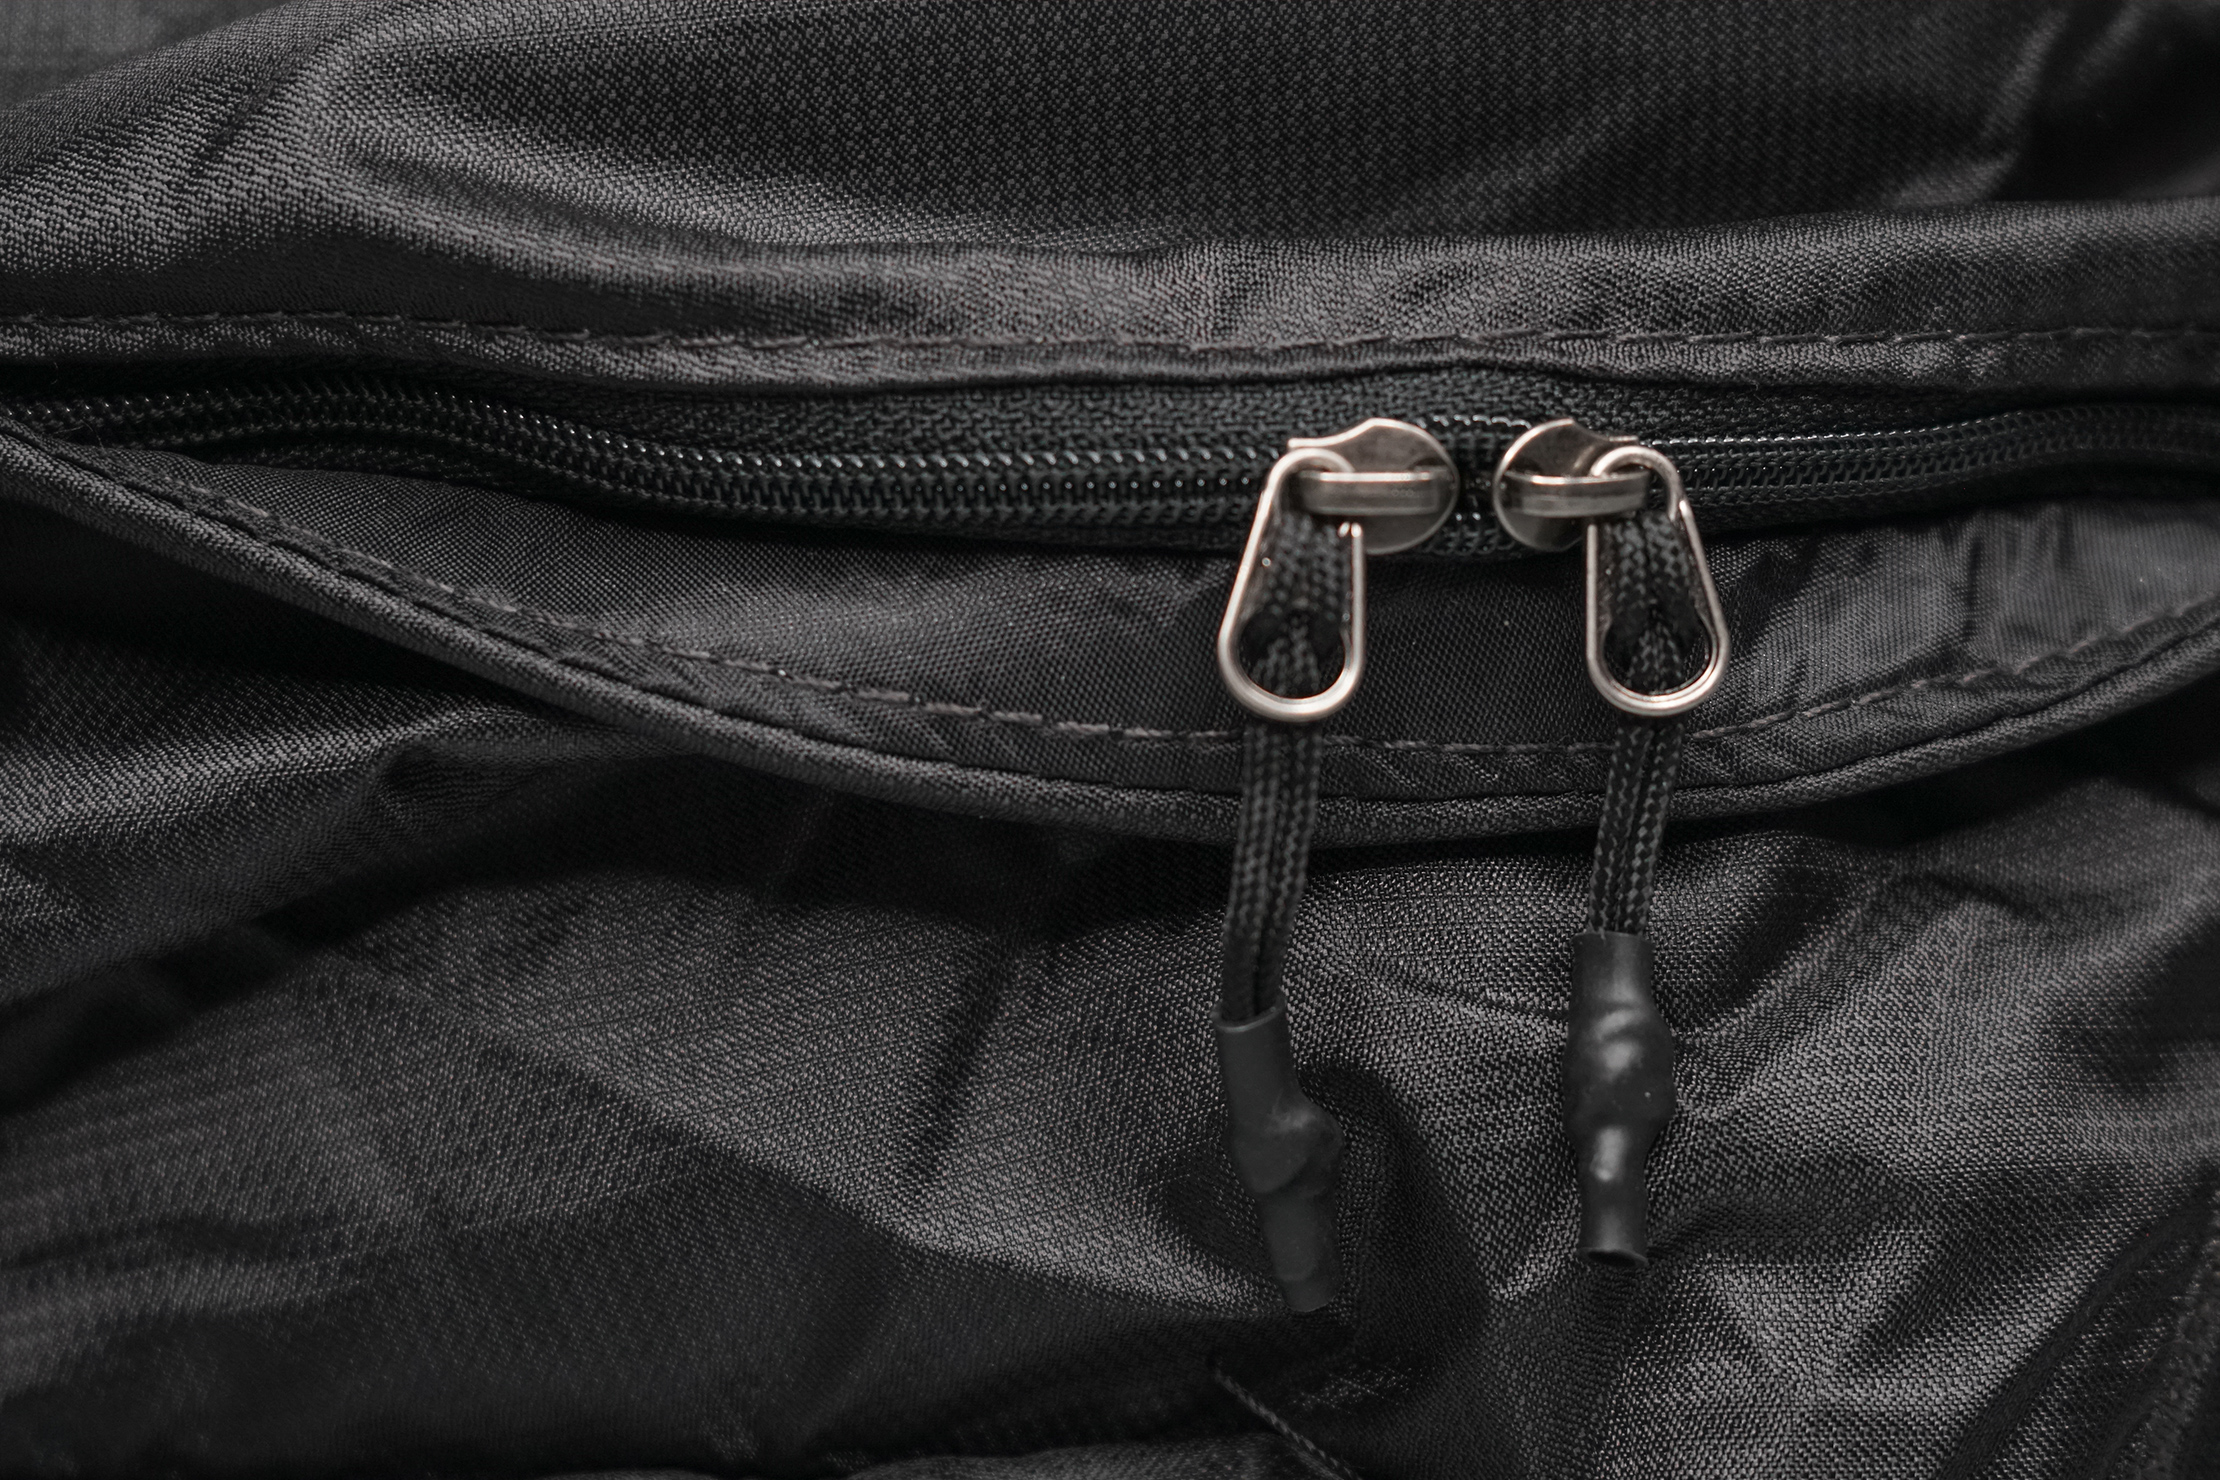 Matador On-Grid Packable Backpack Zippers